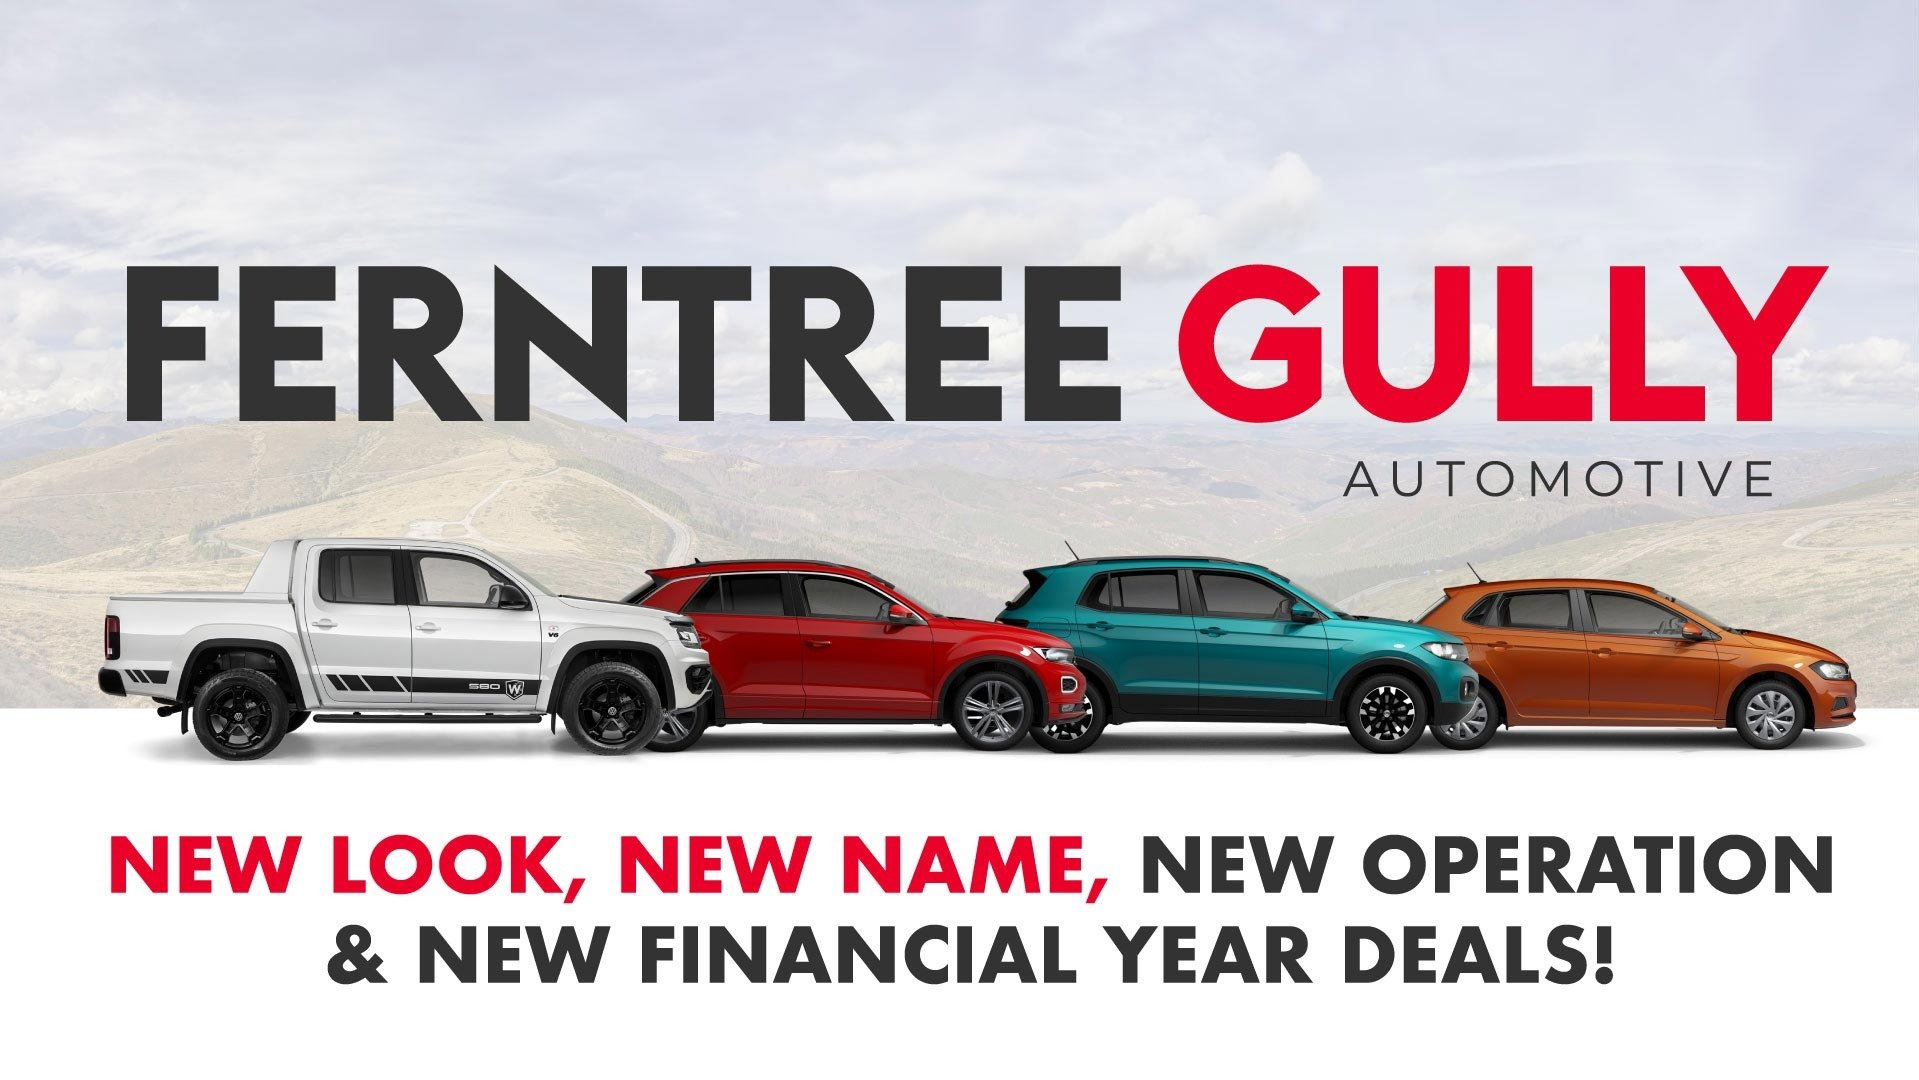 Ferntree Gully Automotive - New Look, New Deals